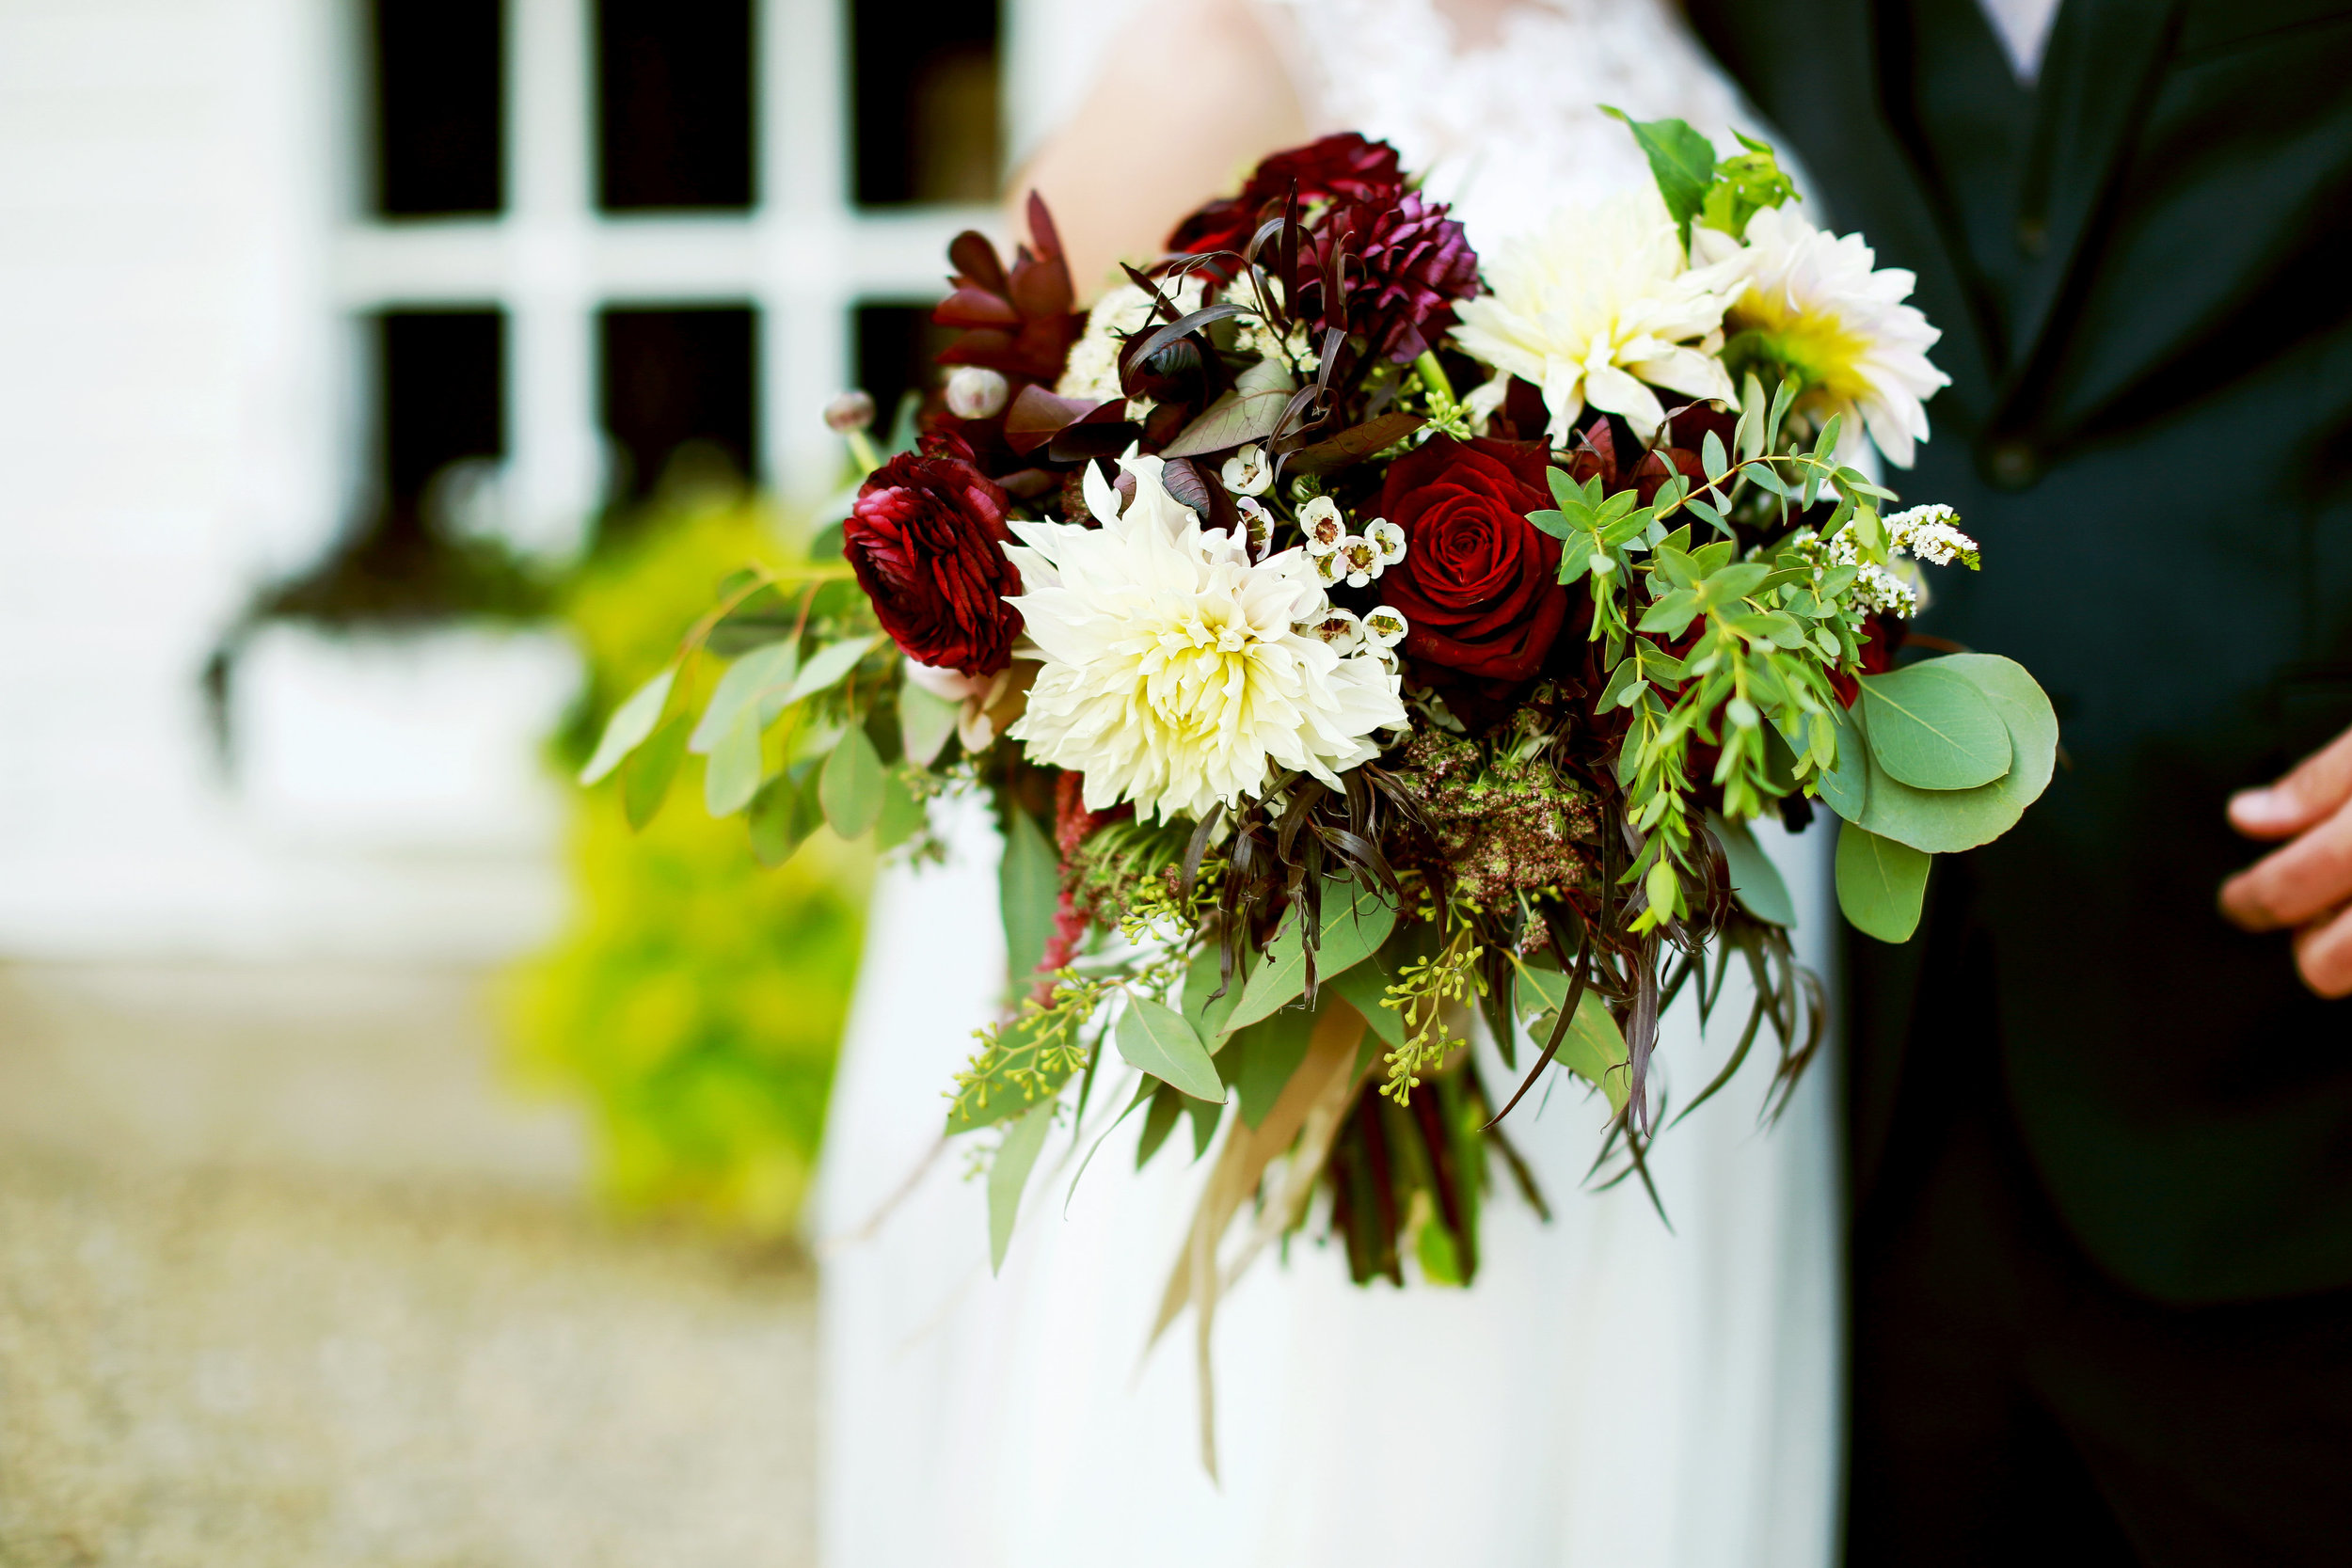 bridal bouquet with wax flowers and ranunculus, myrtle, chocolate queen anne's lace, seeded eucalyptus, and deep red flowers